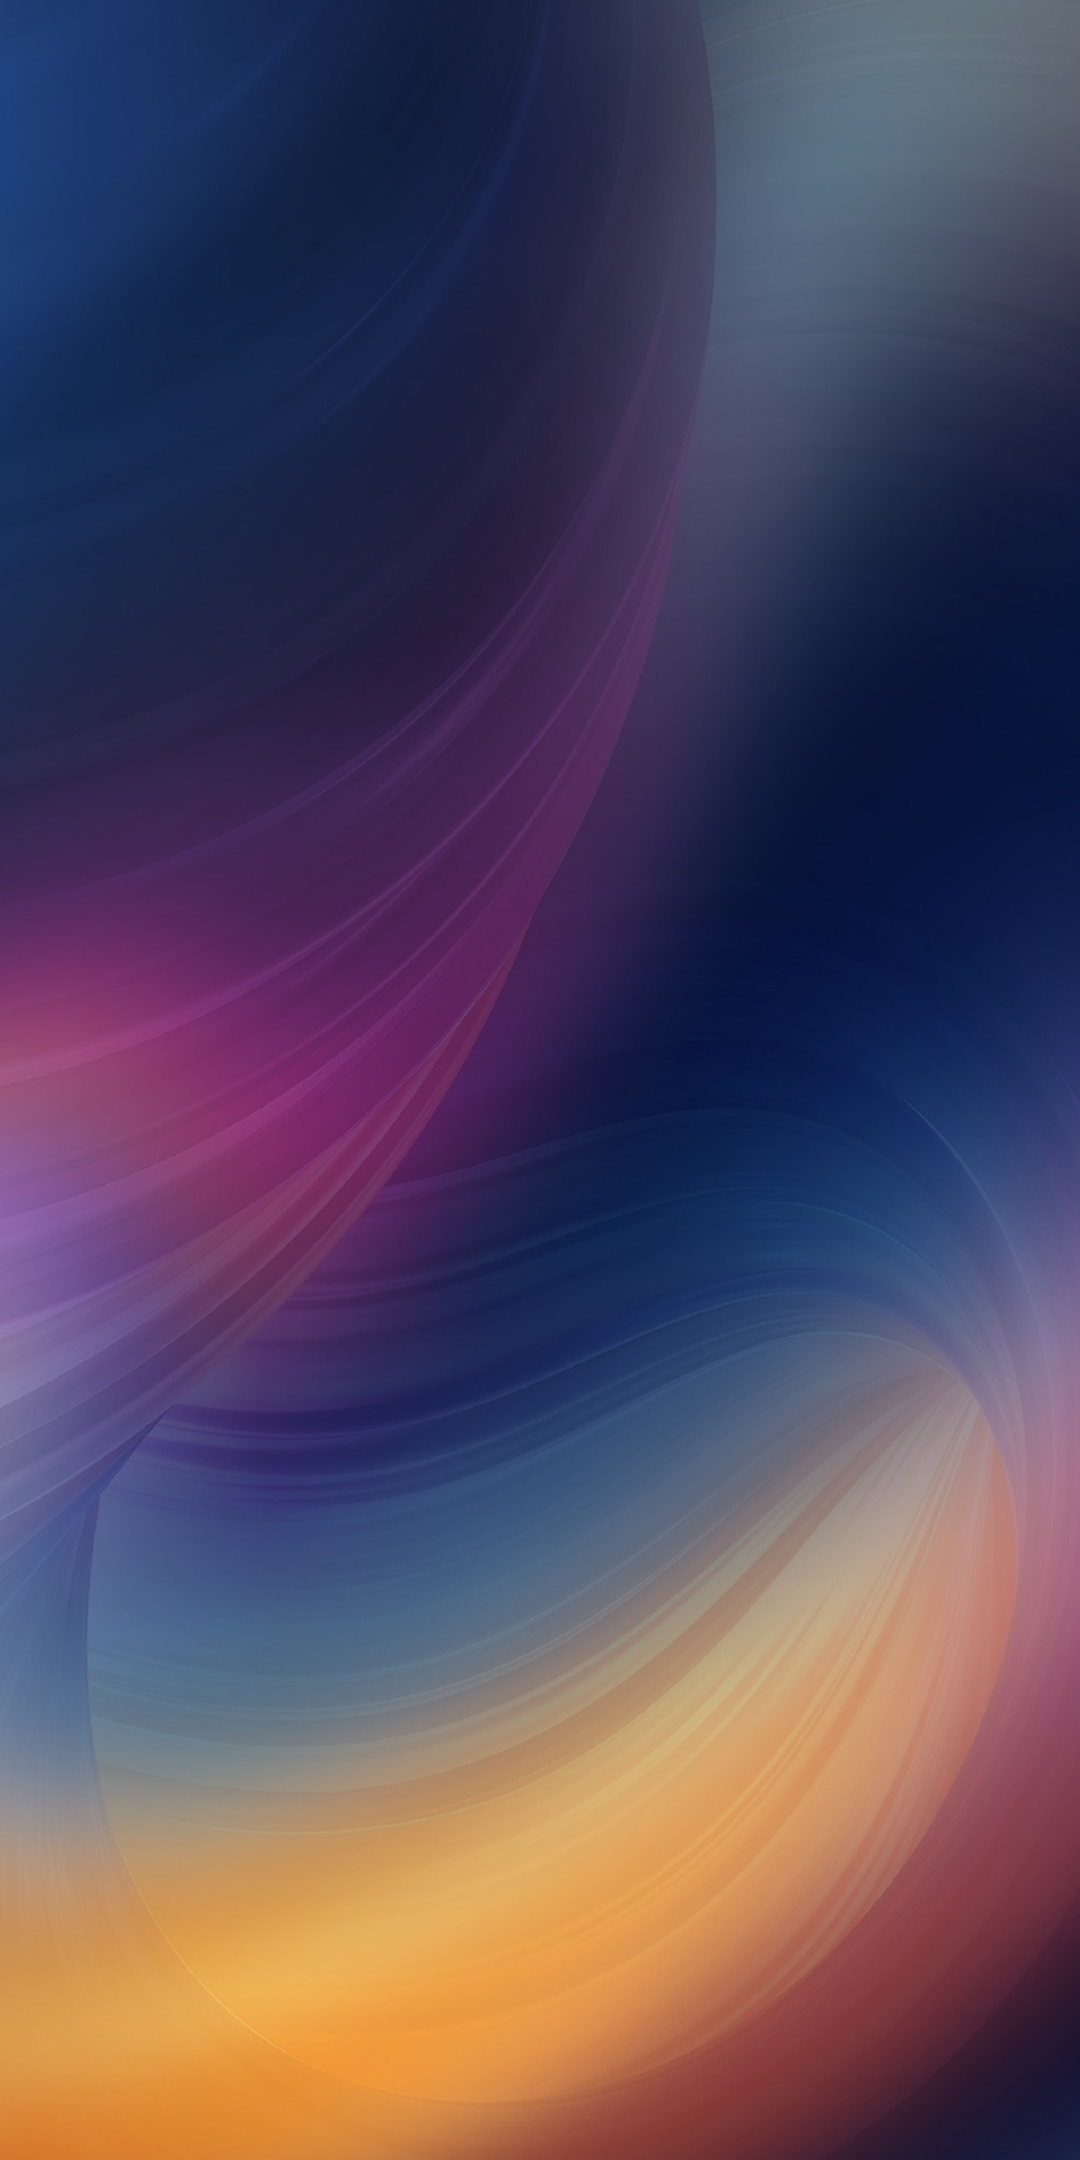 Huawei Mate 10 Pro Wallpaper 05 of 10 with Abstract Light ...